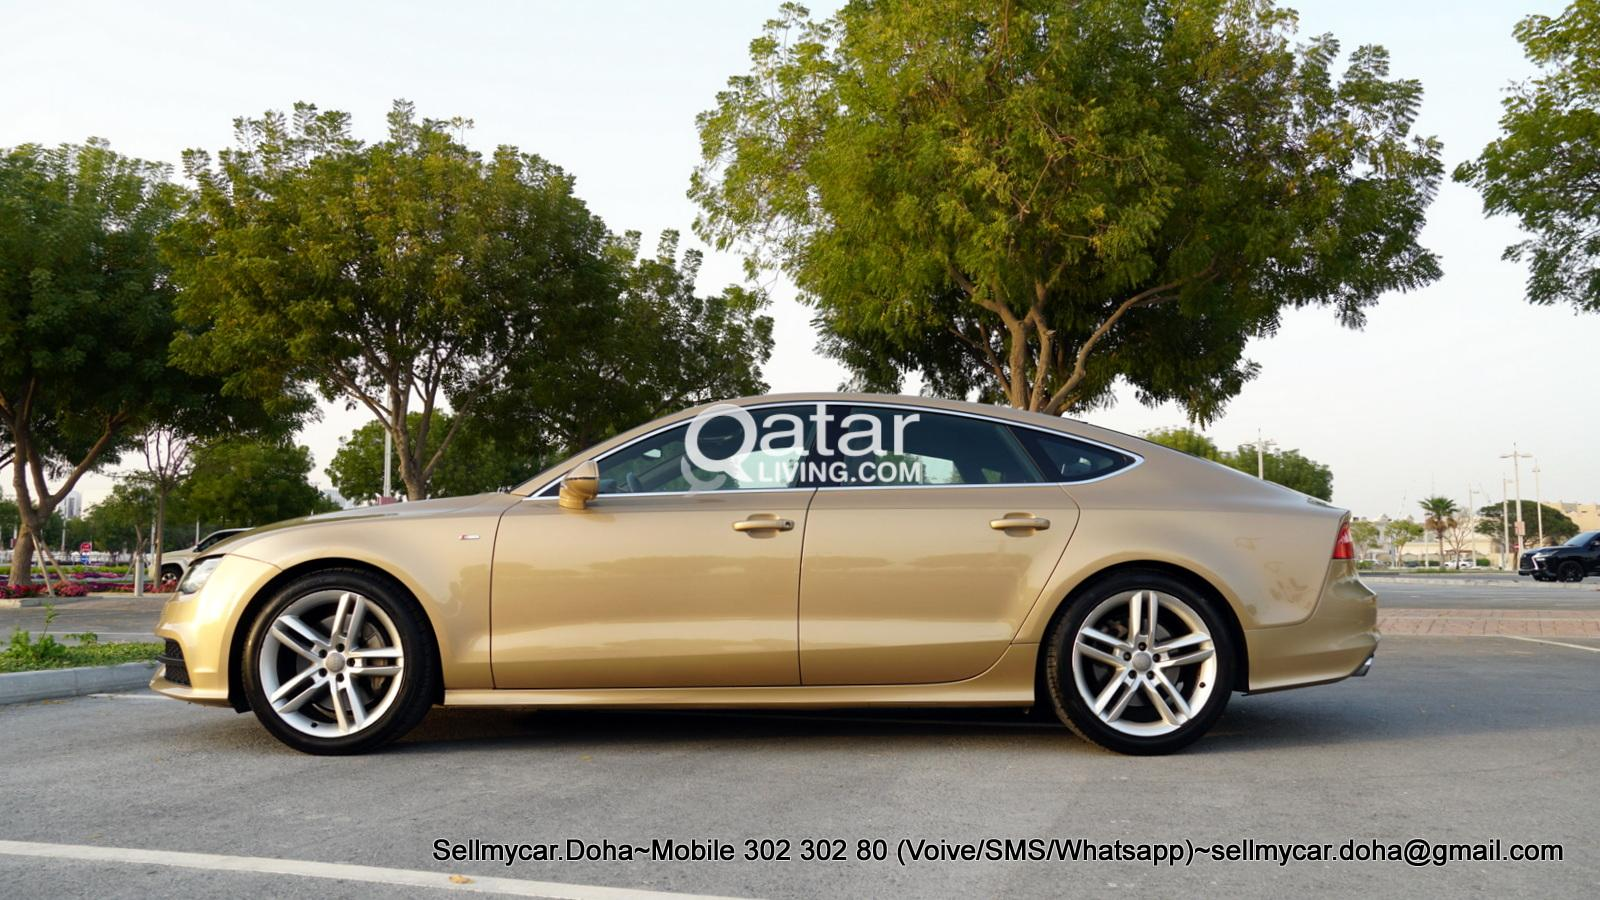 2013 Audi A7 Quattro 3.0t S-Line (Many More Photos